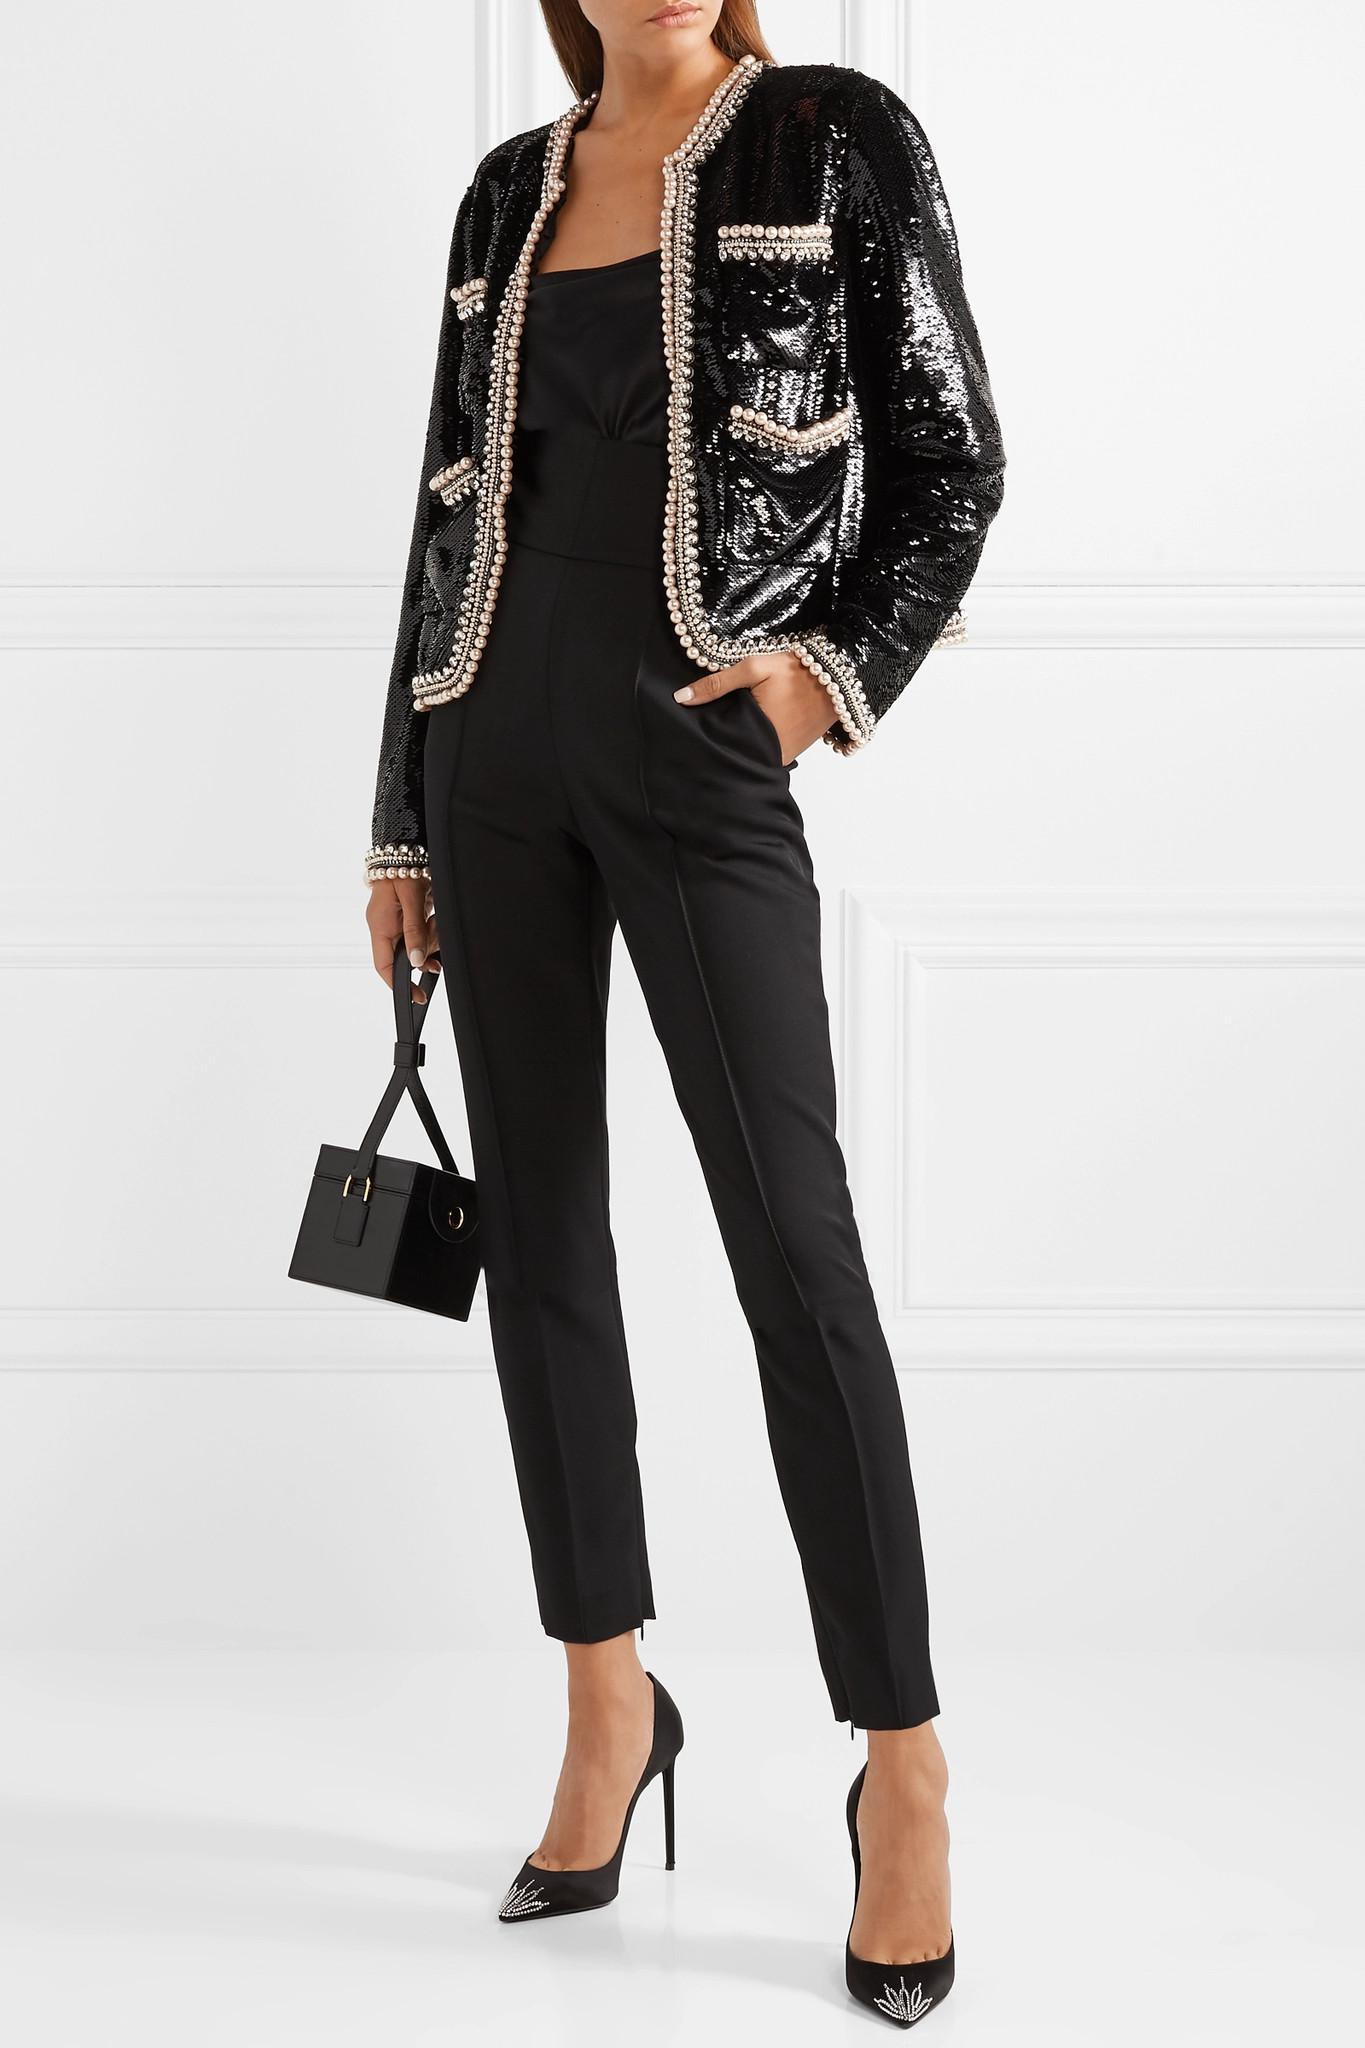 fbe24e47503d Gucci - Black Faux Pearl And Crystal-trimmed Sequined Crepe Jacket - Lyst.  View fullscreen